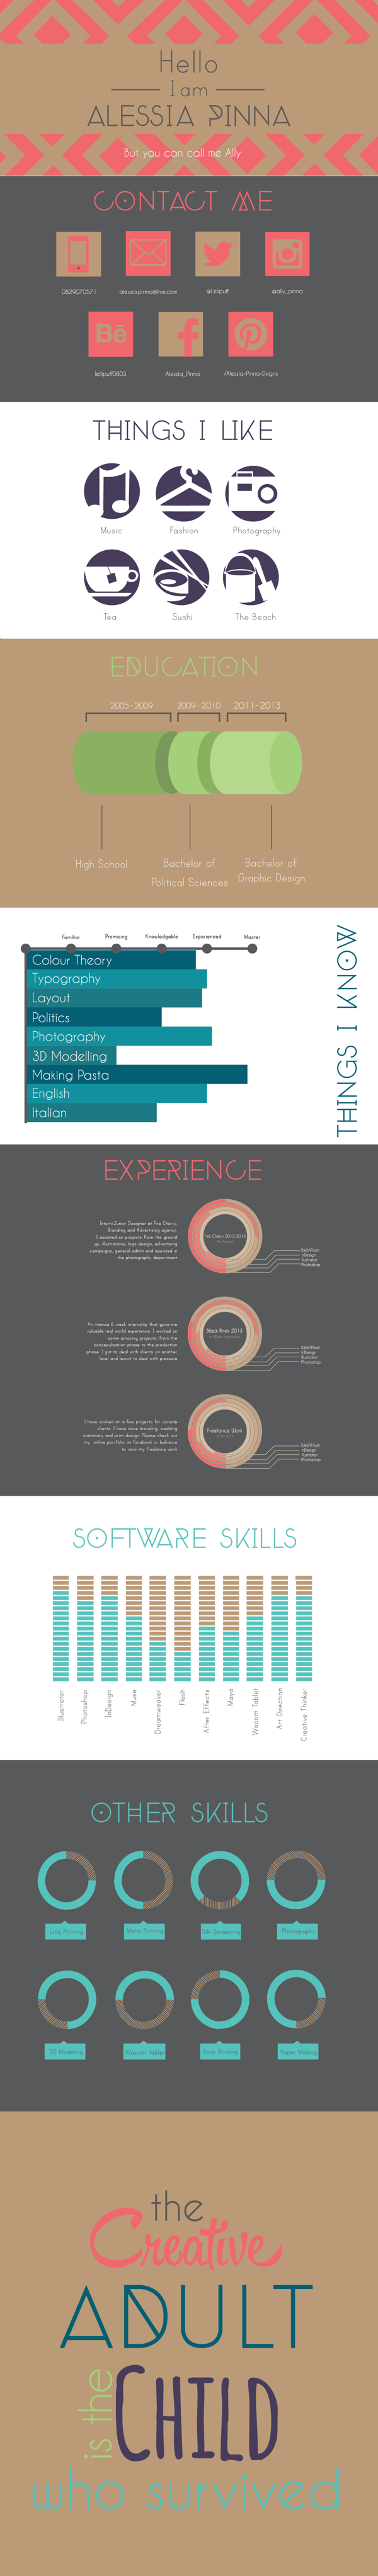 I design infographic resumes like this one - check out my ...